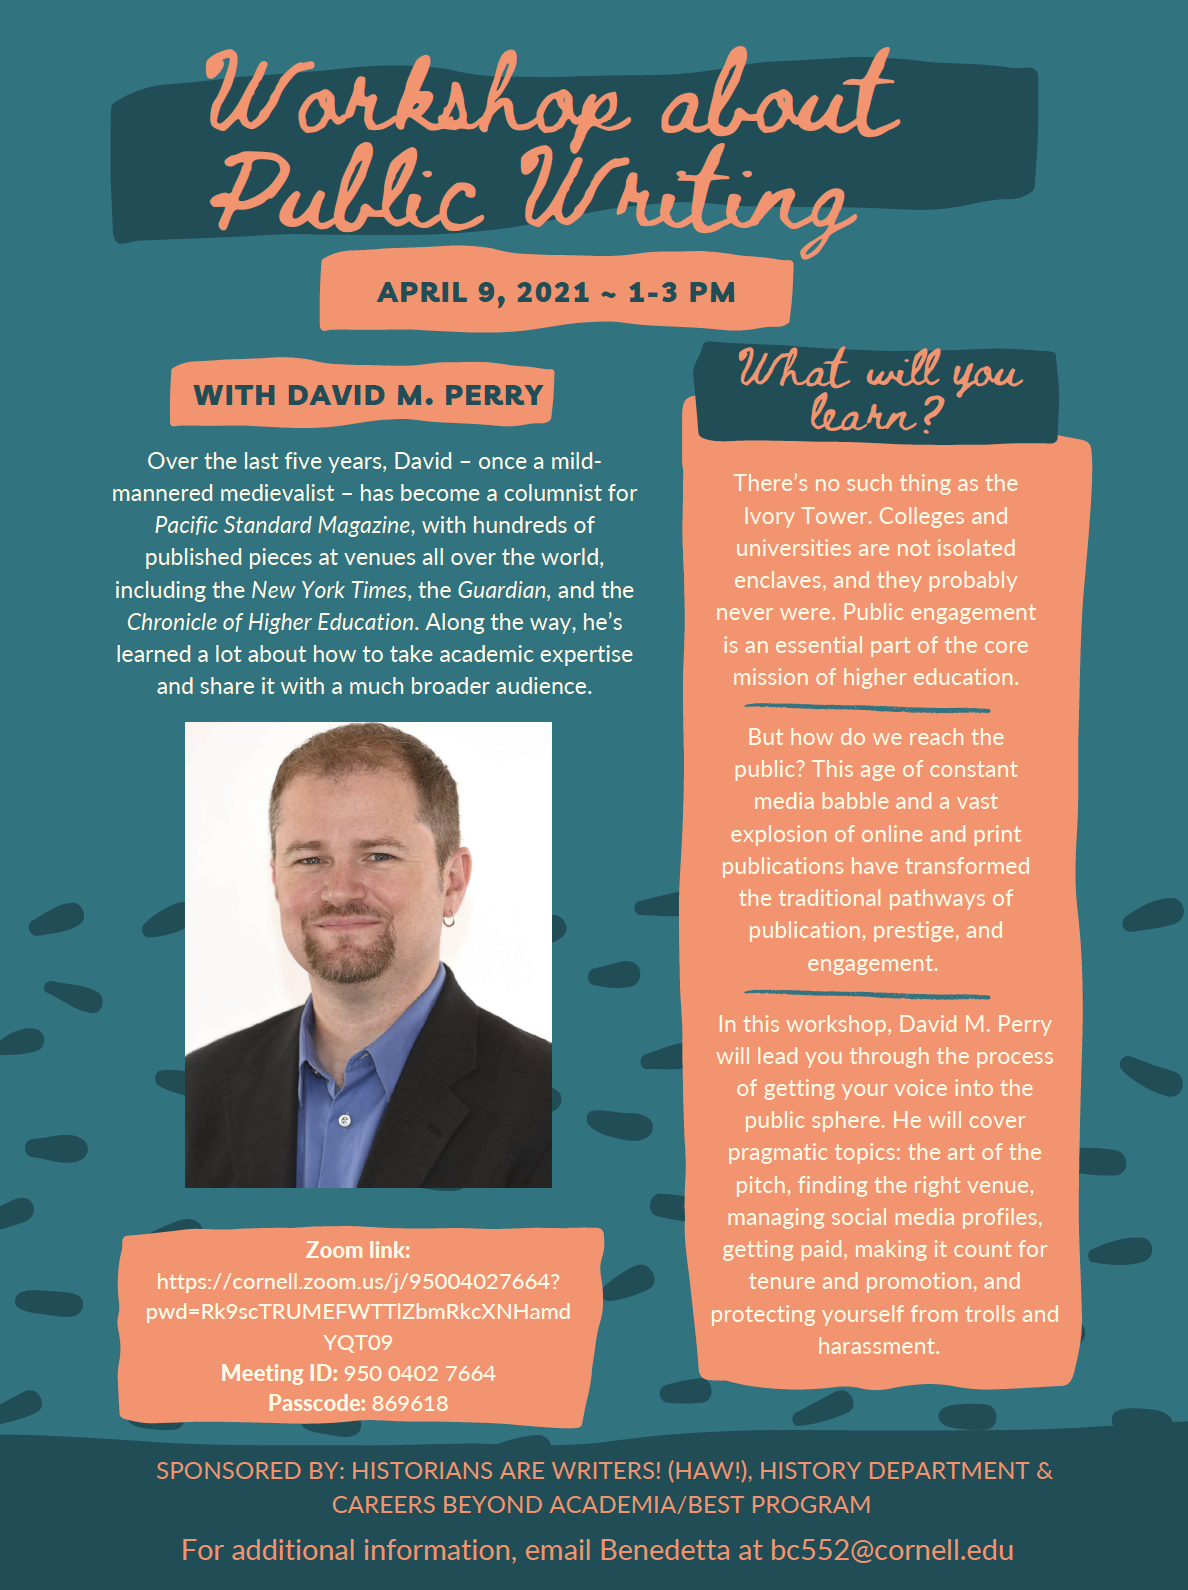 Workshop about Public Writing with David M. Perry